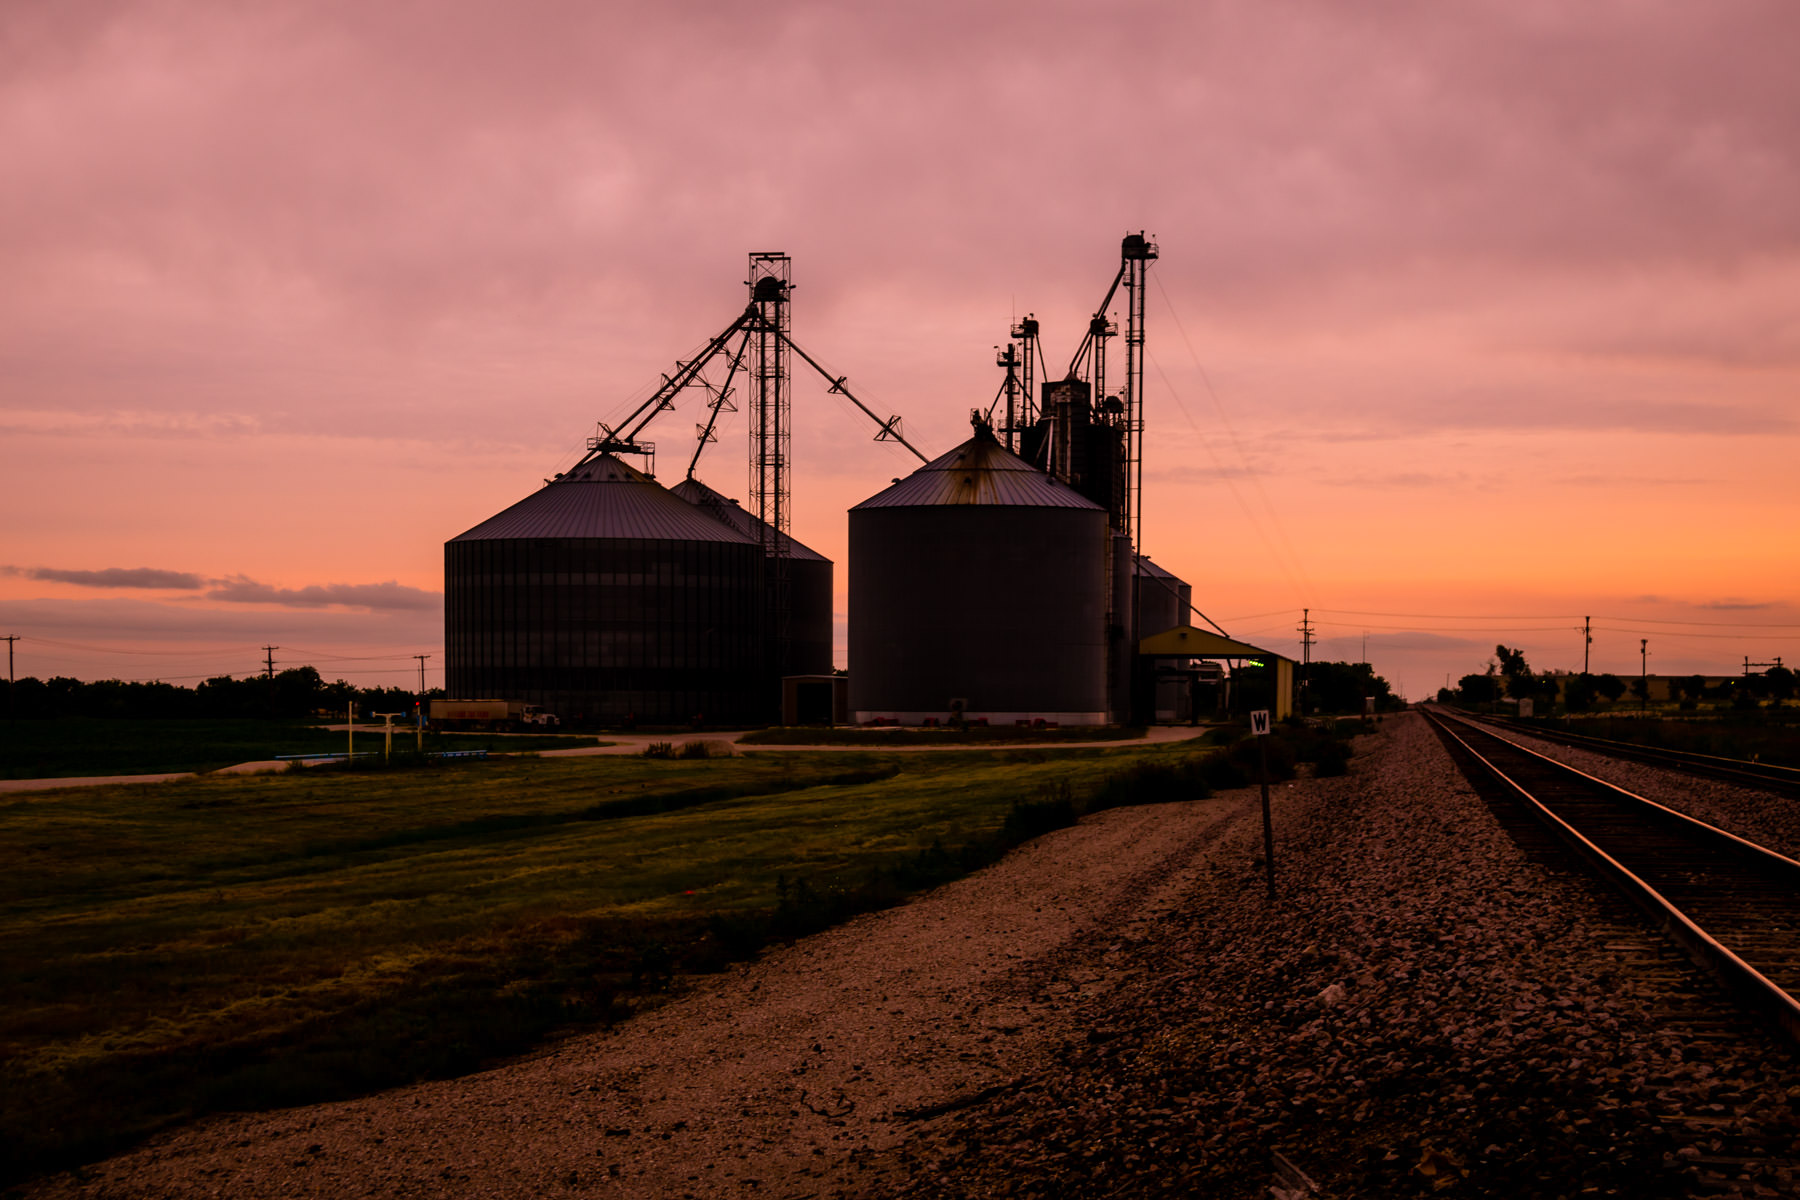 Silos in Prosper, Texas, are silhouetted by the rising sun.